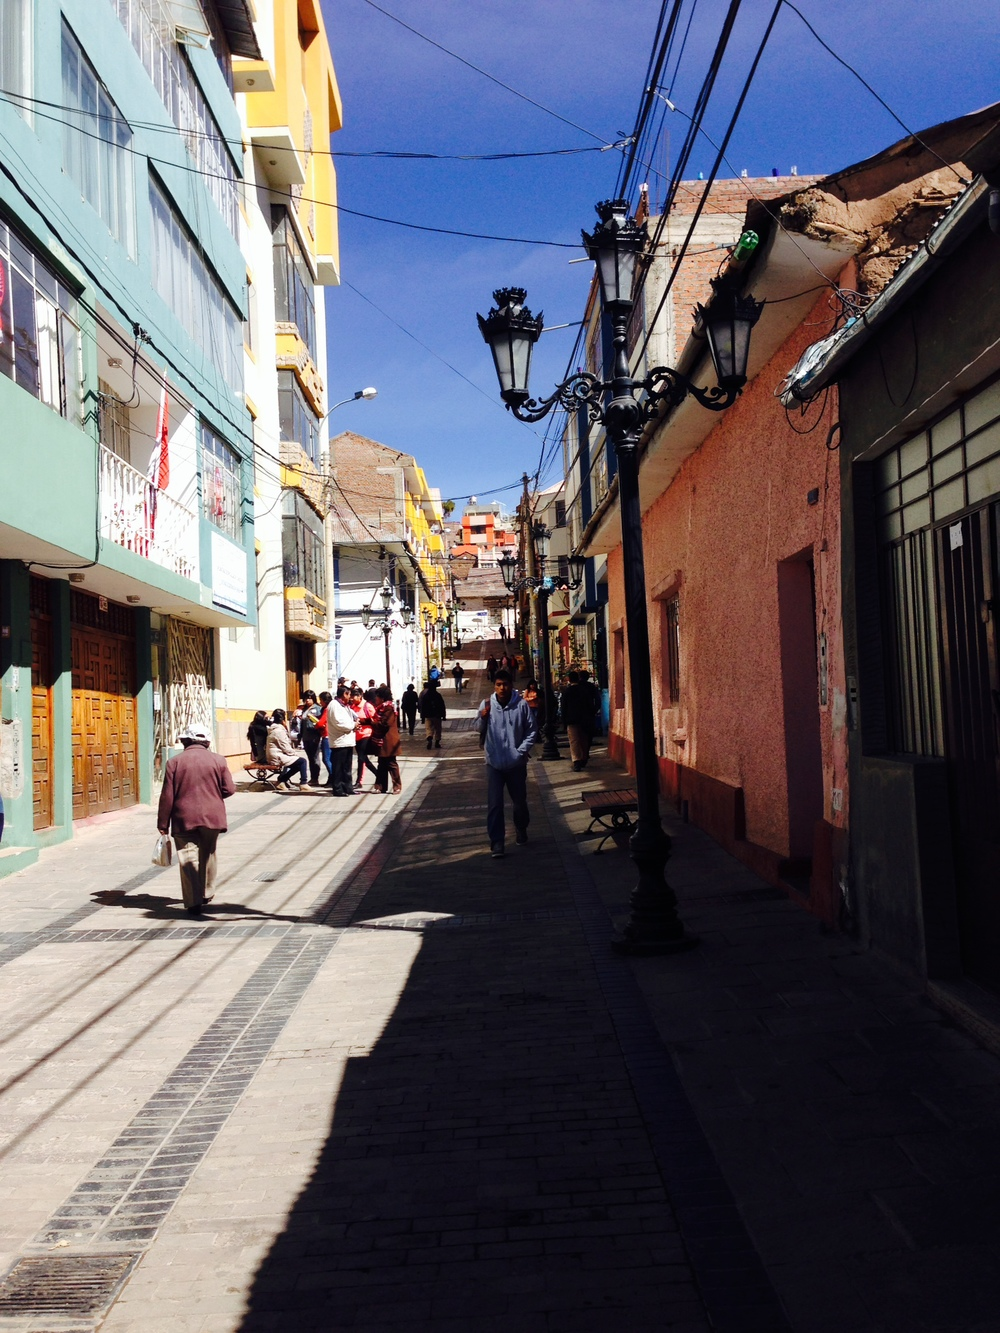 Near the main square in Puno